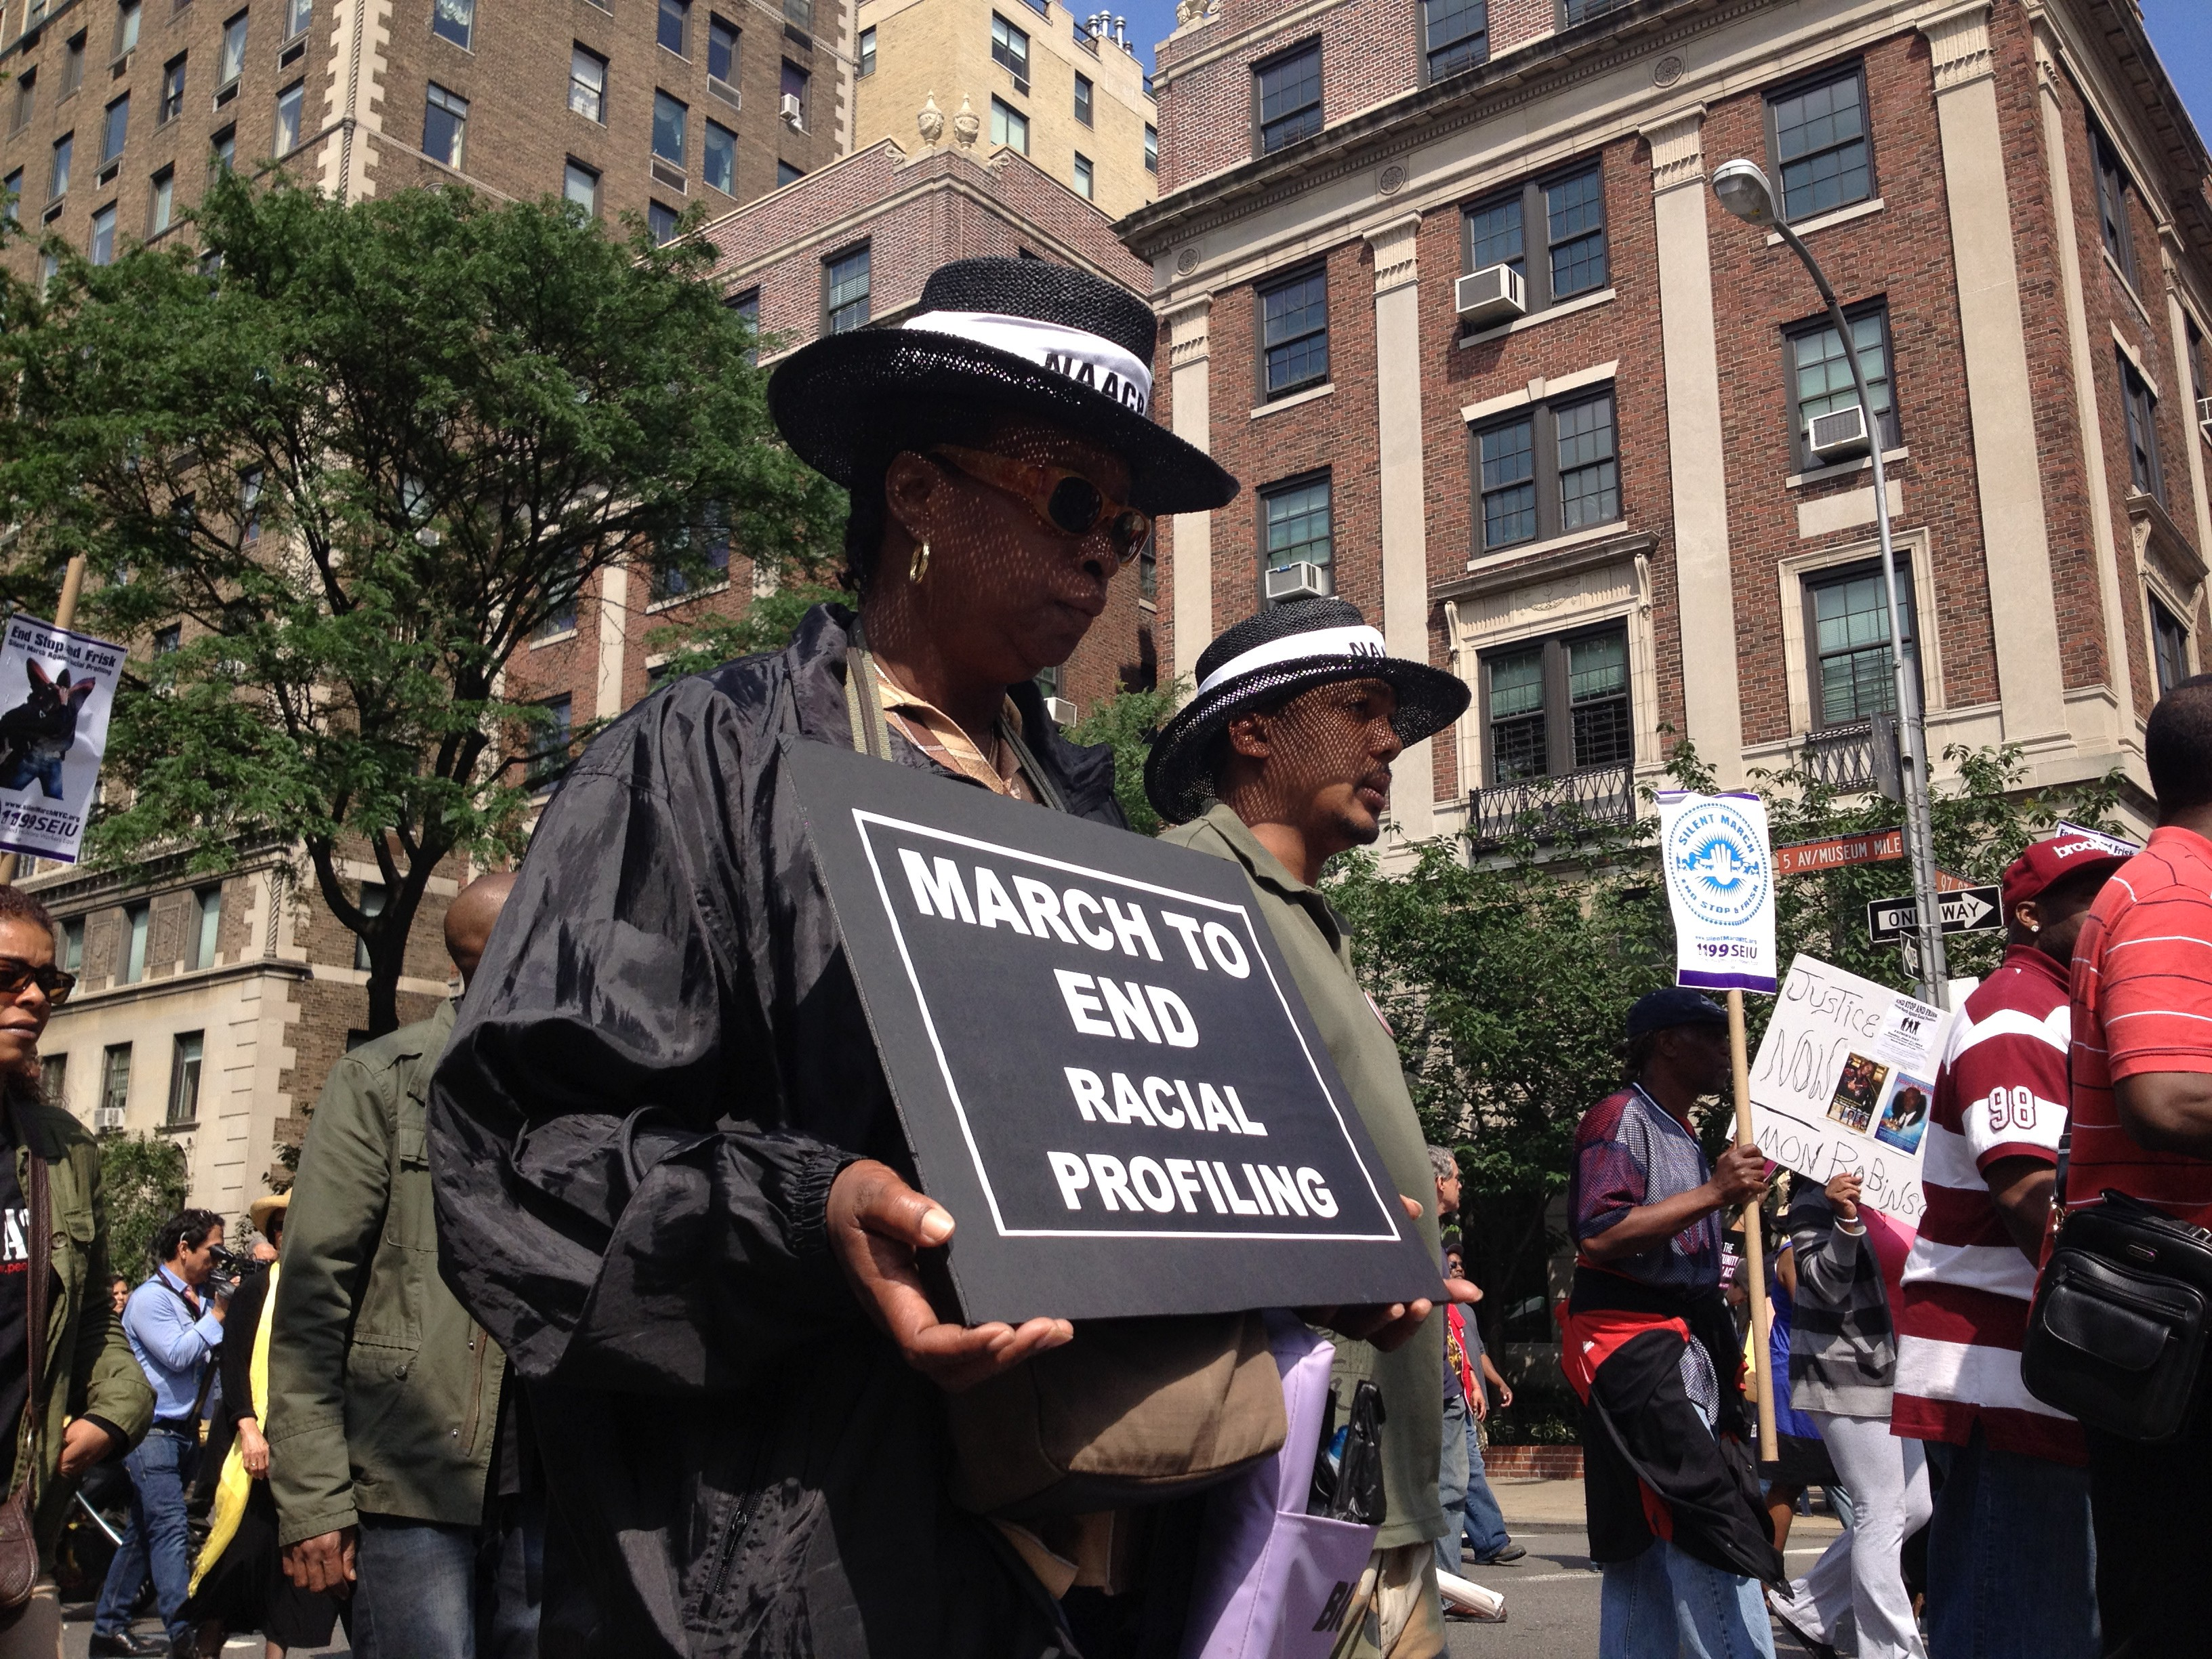 Protesters march to end racial profiling in New York City